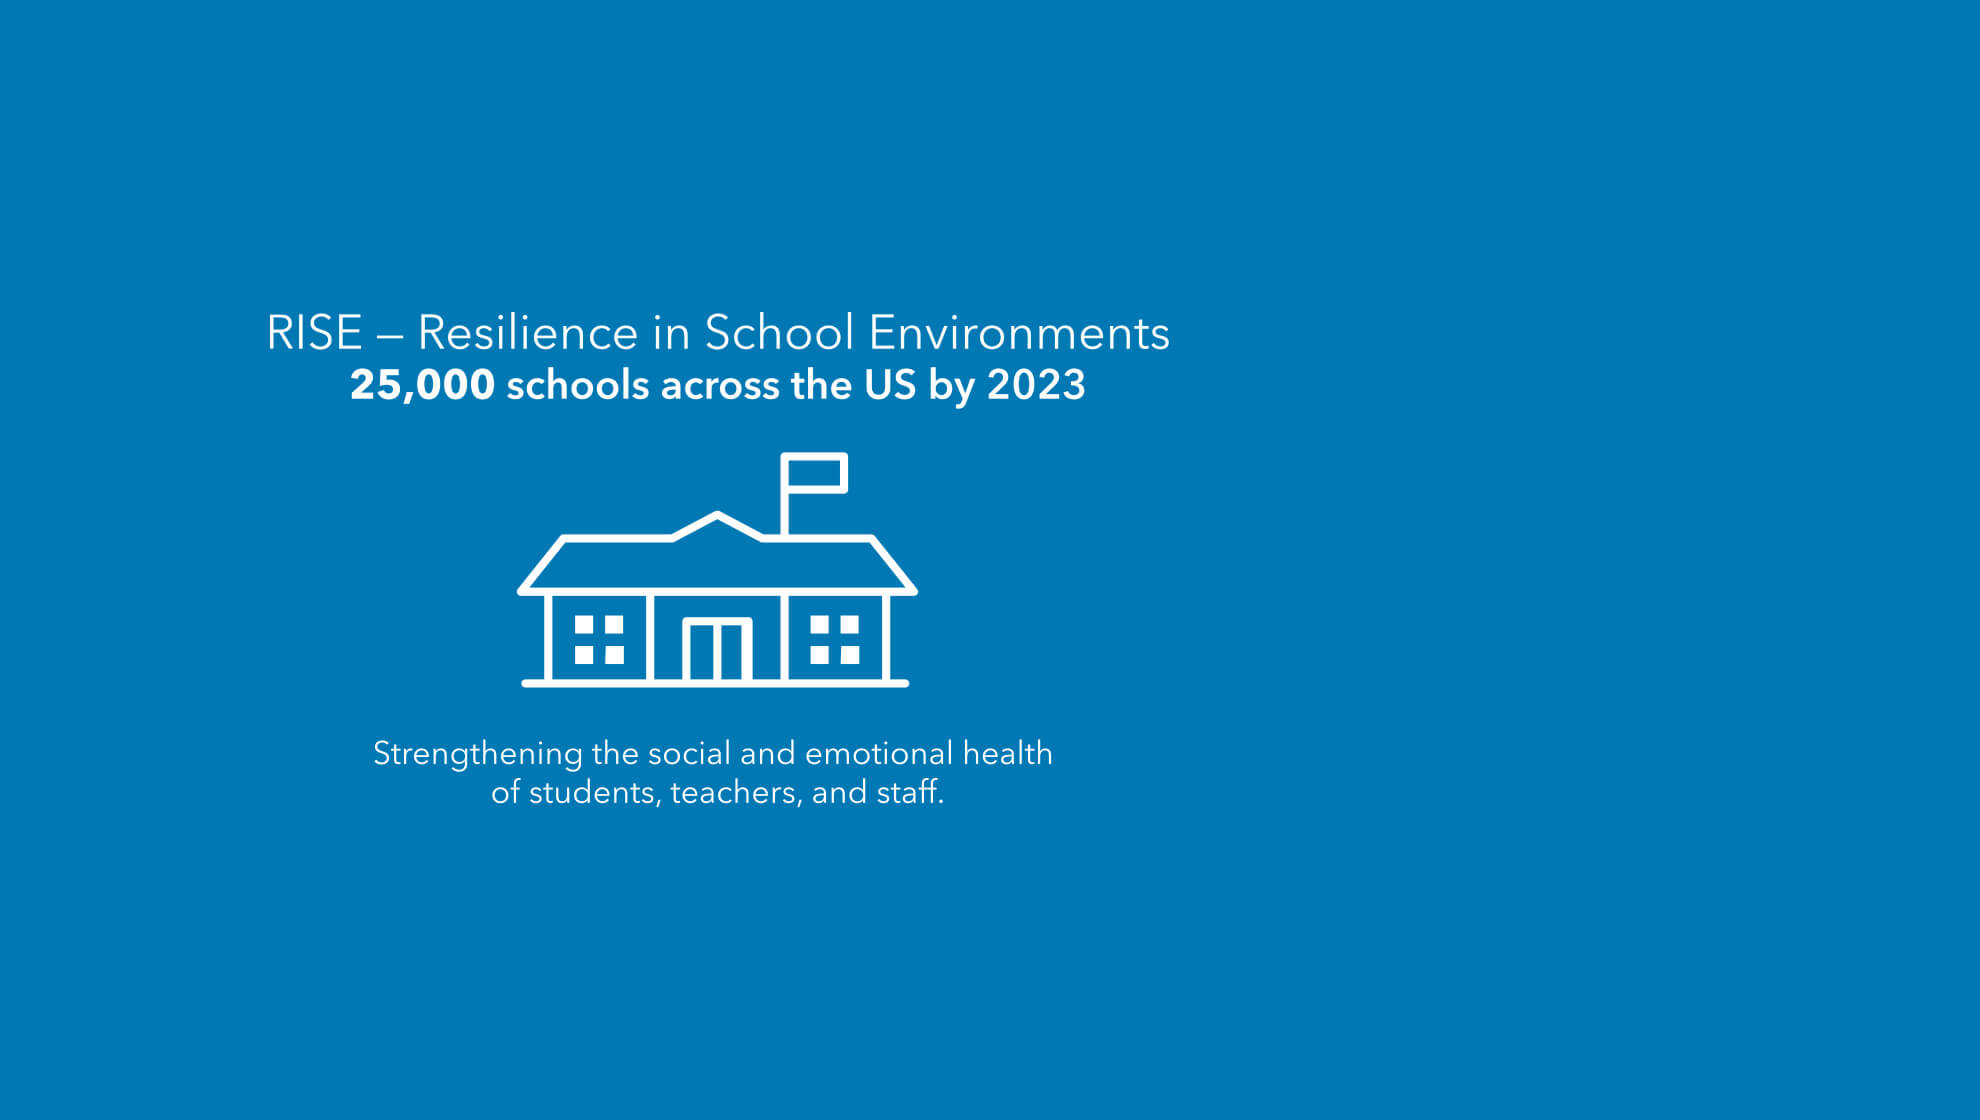 RISE — Resilience in School Environments. 25,000 schools across the US by 2023. Strengthening the social and emotional health of students, teachers, and staff.